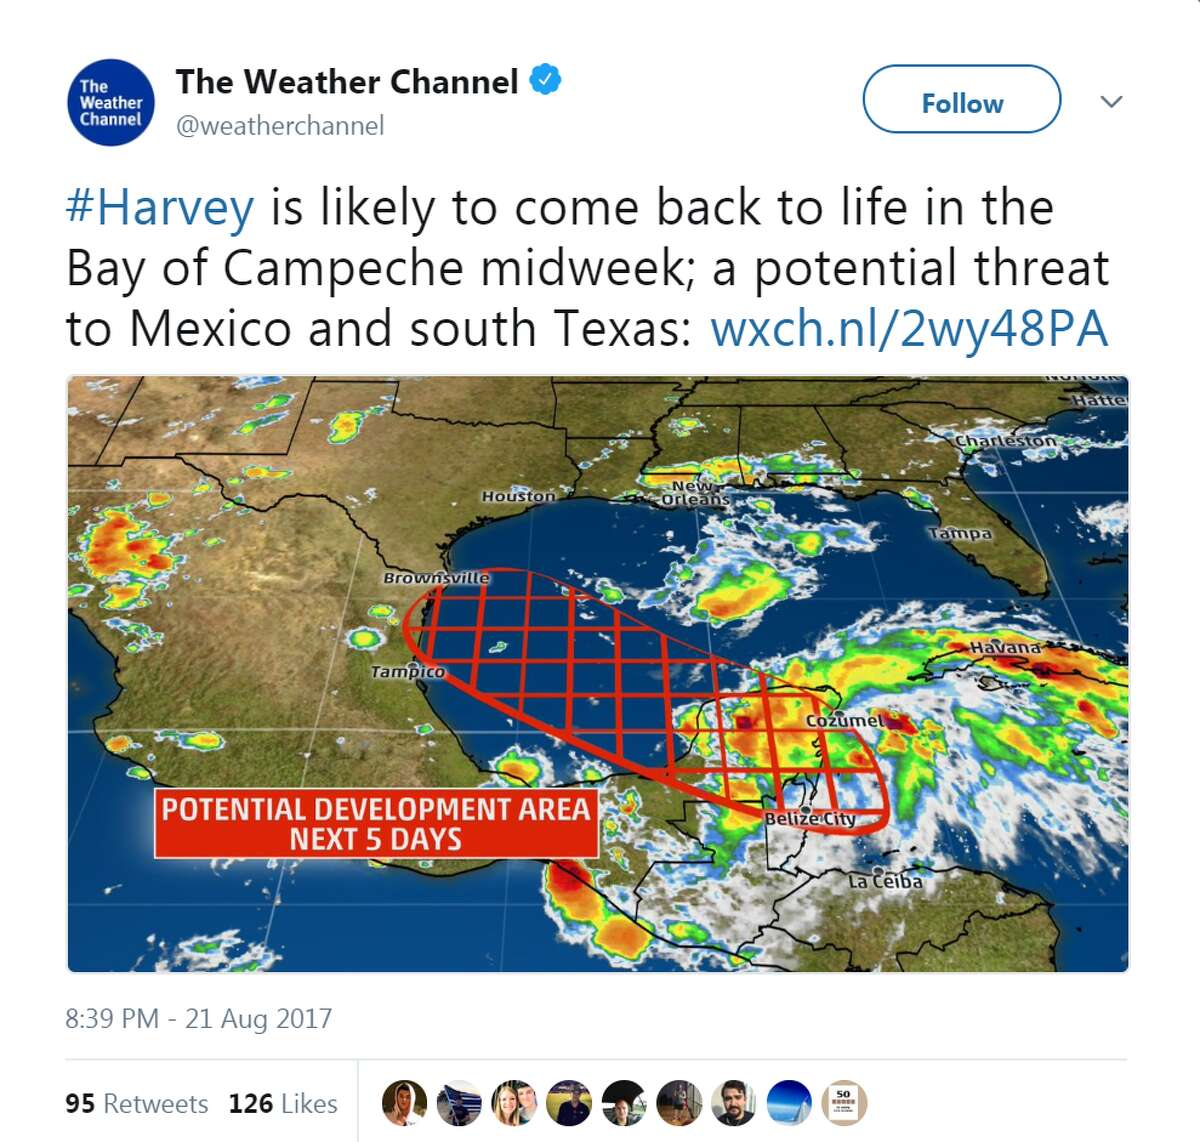 The Weather Channel, August 21